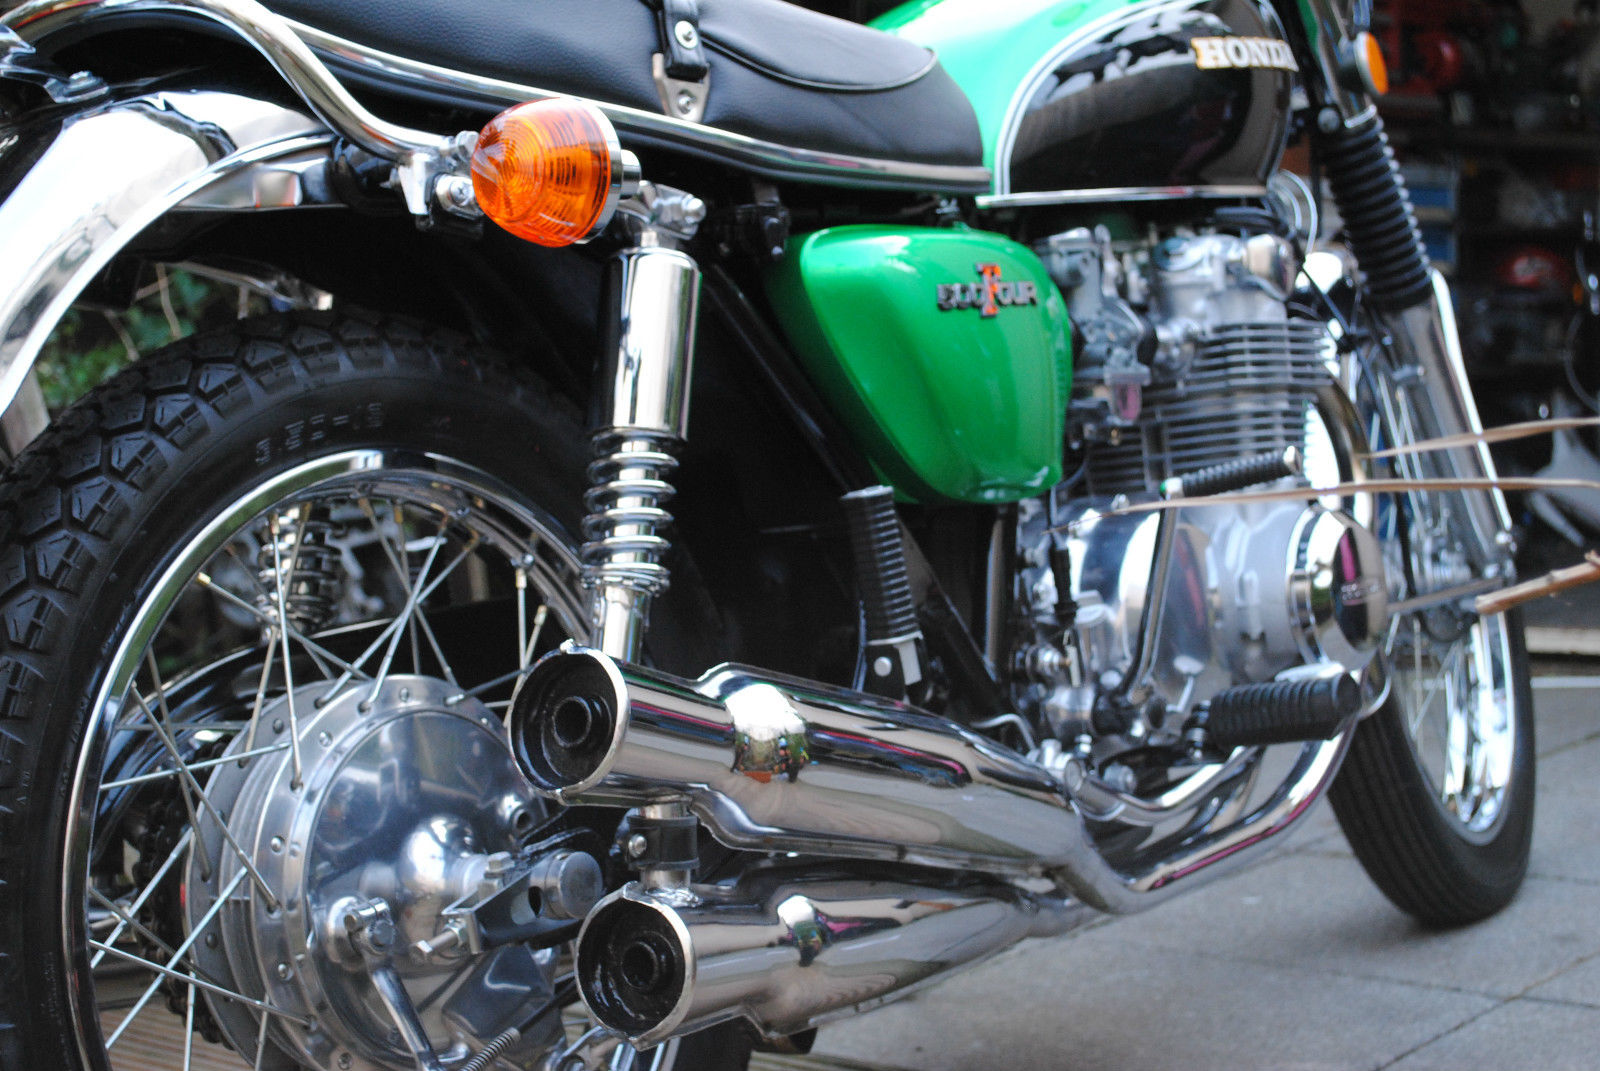 Honda CB500 Four - 1972 - Exhausts, Shock Absorber, Rear Brake Hub, Rear Footrest, Indicator and Seat Trim.